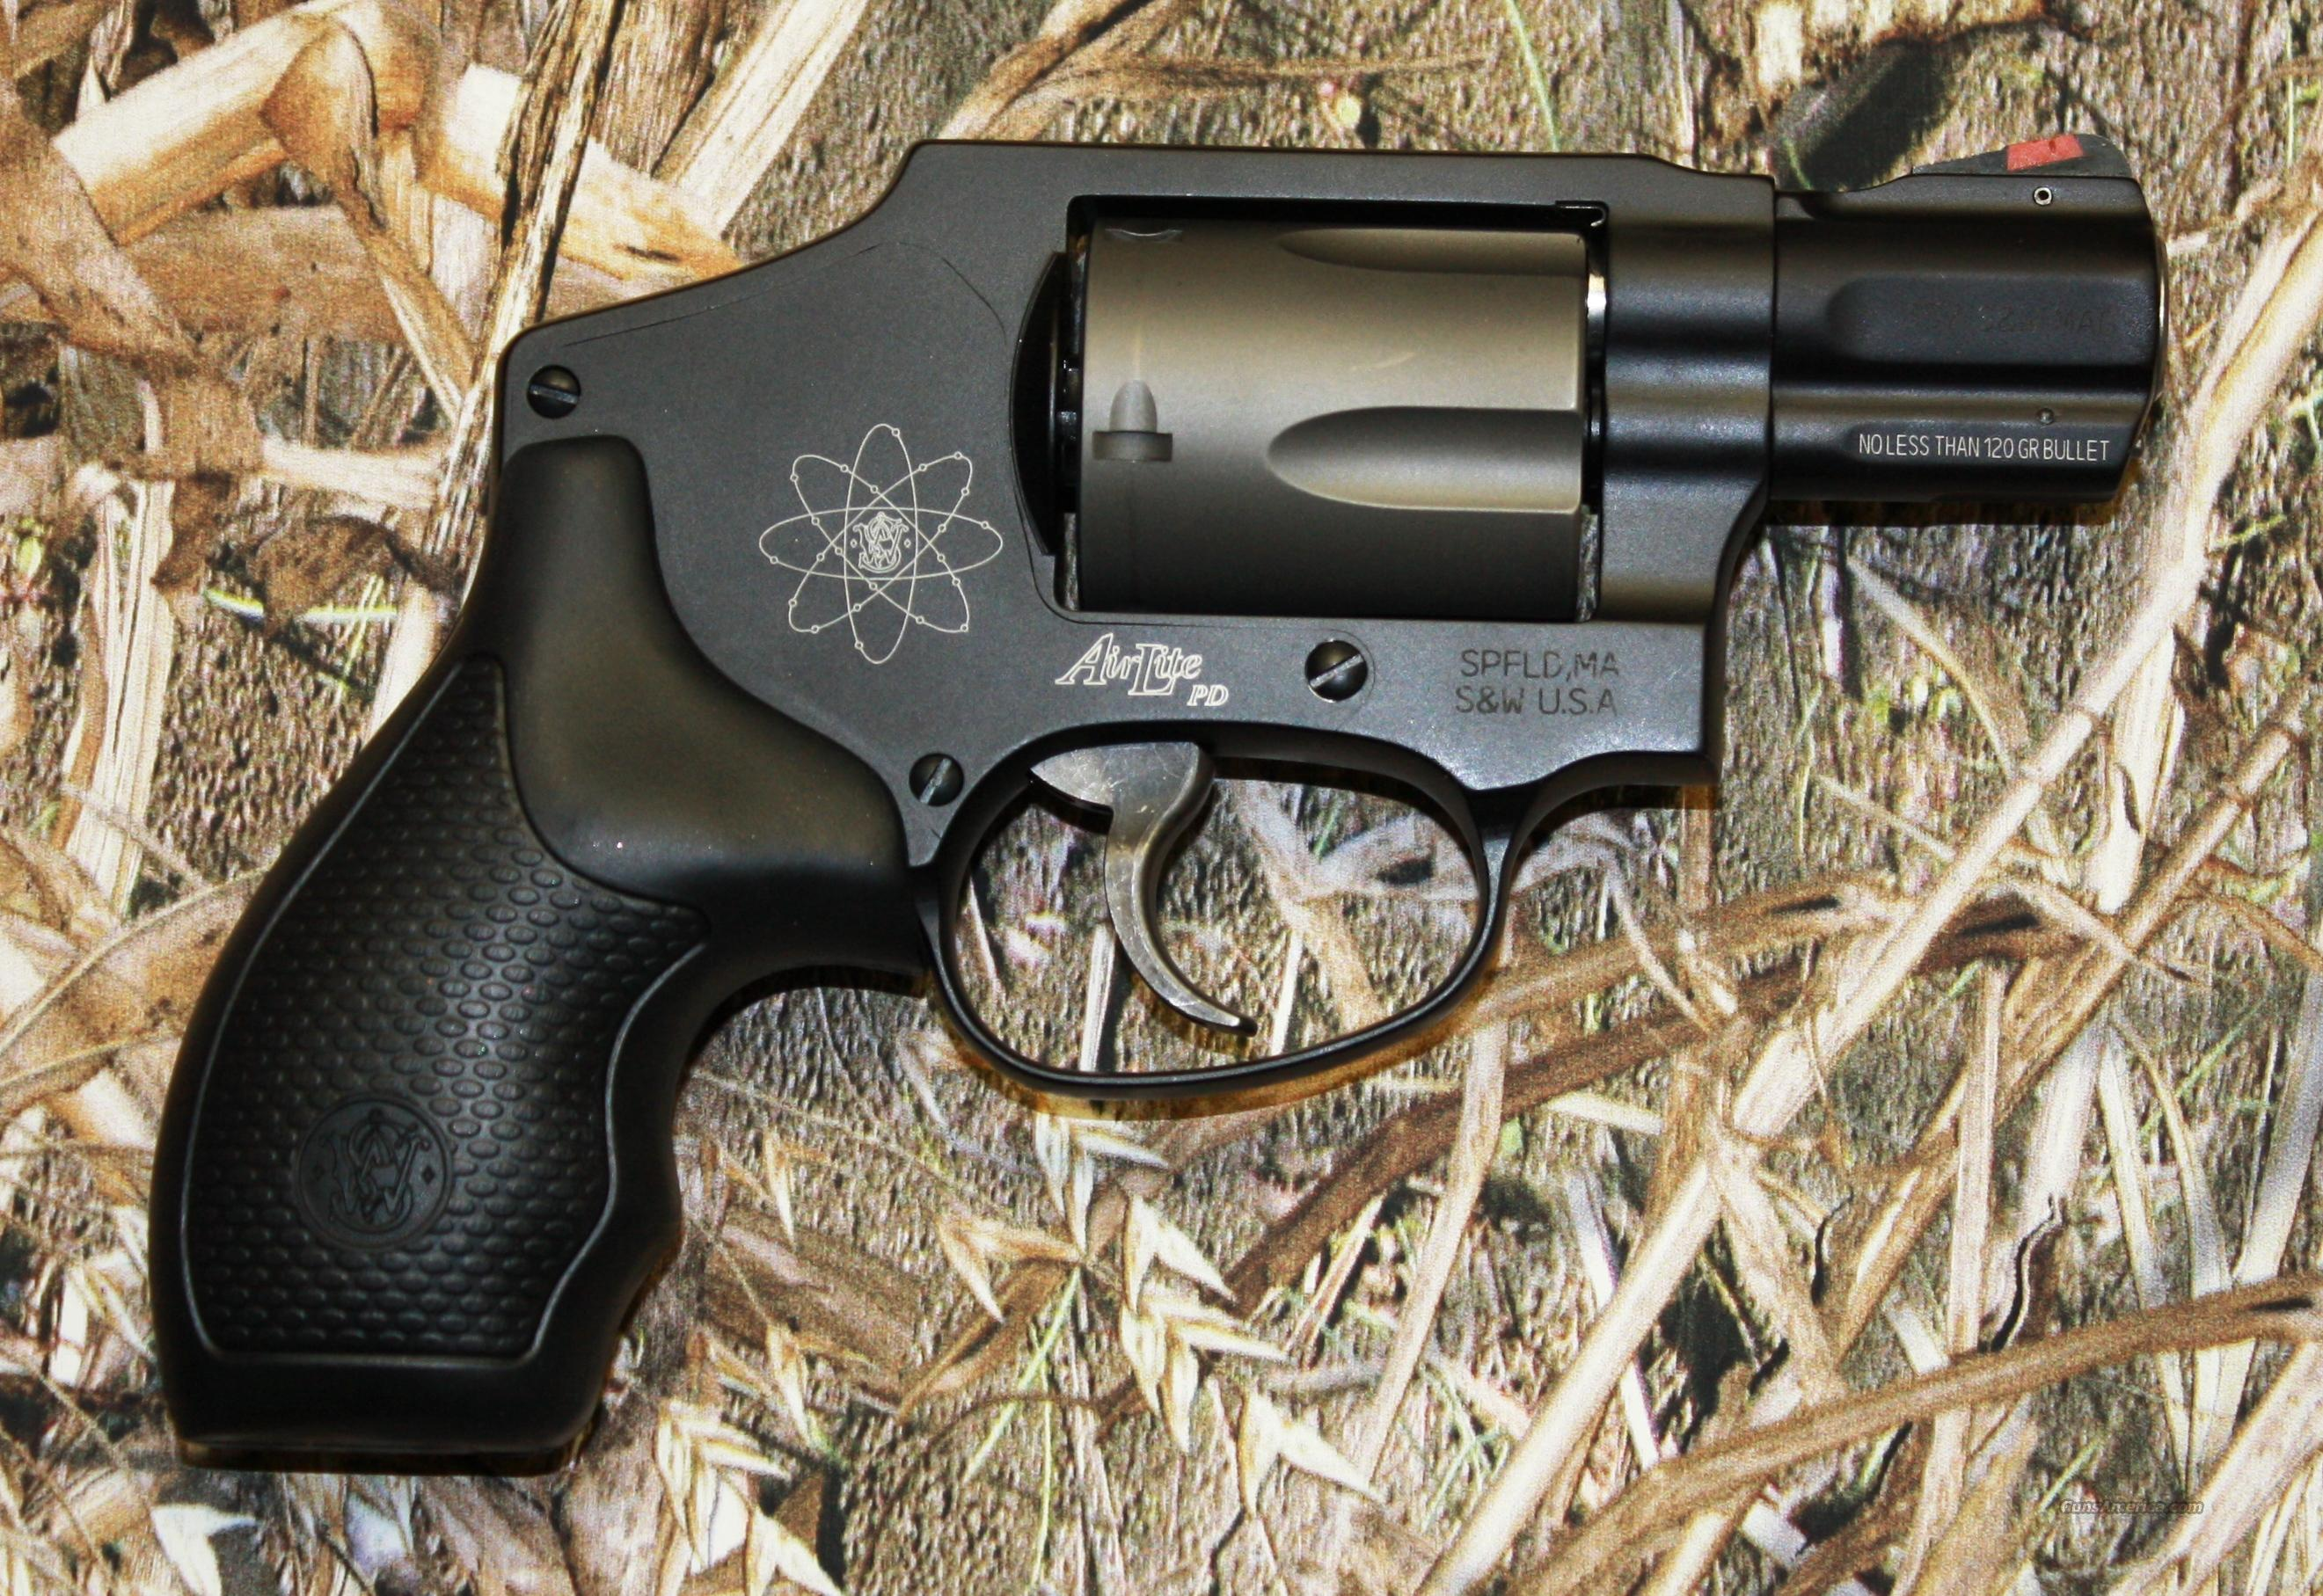 Smith & Wesson 340PD  Guns > Pistols > Smith & Wesson Revolvers > Pocket Pistols